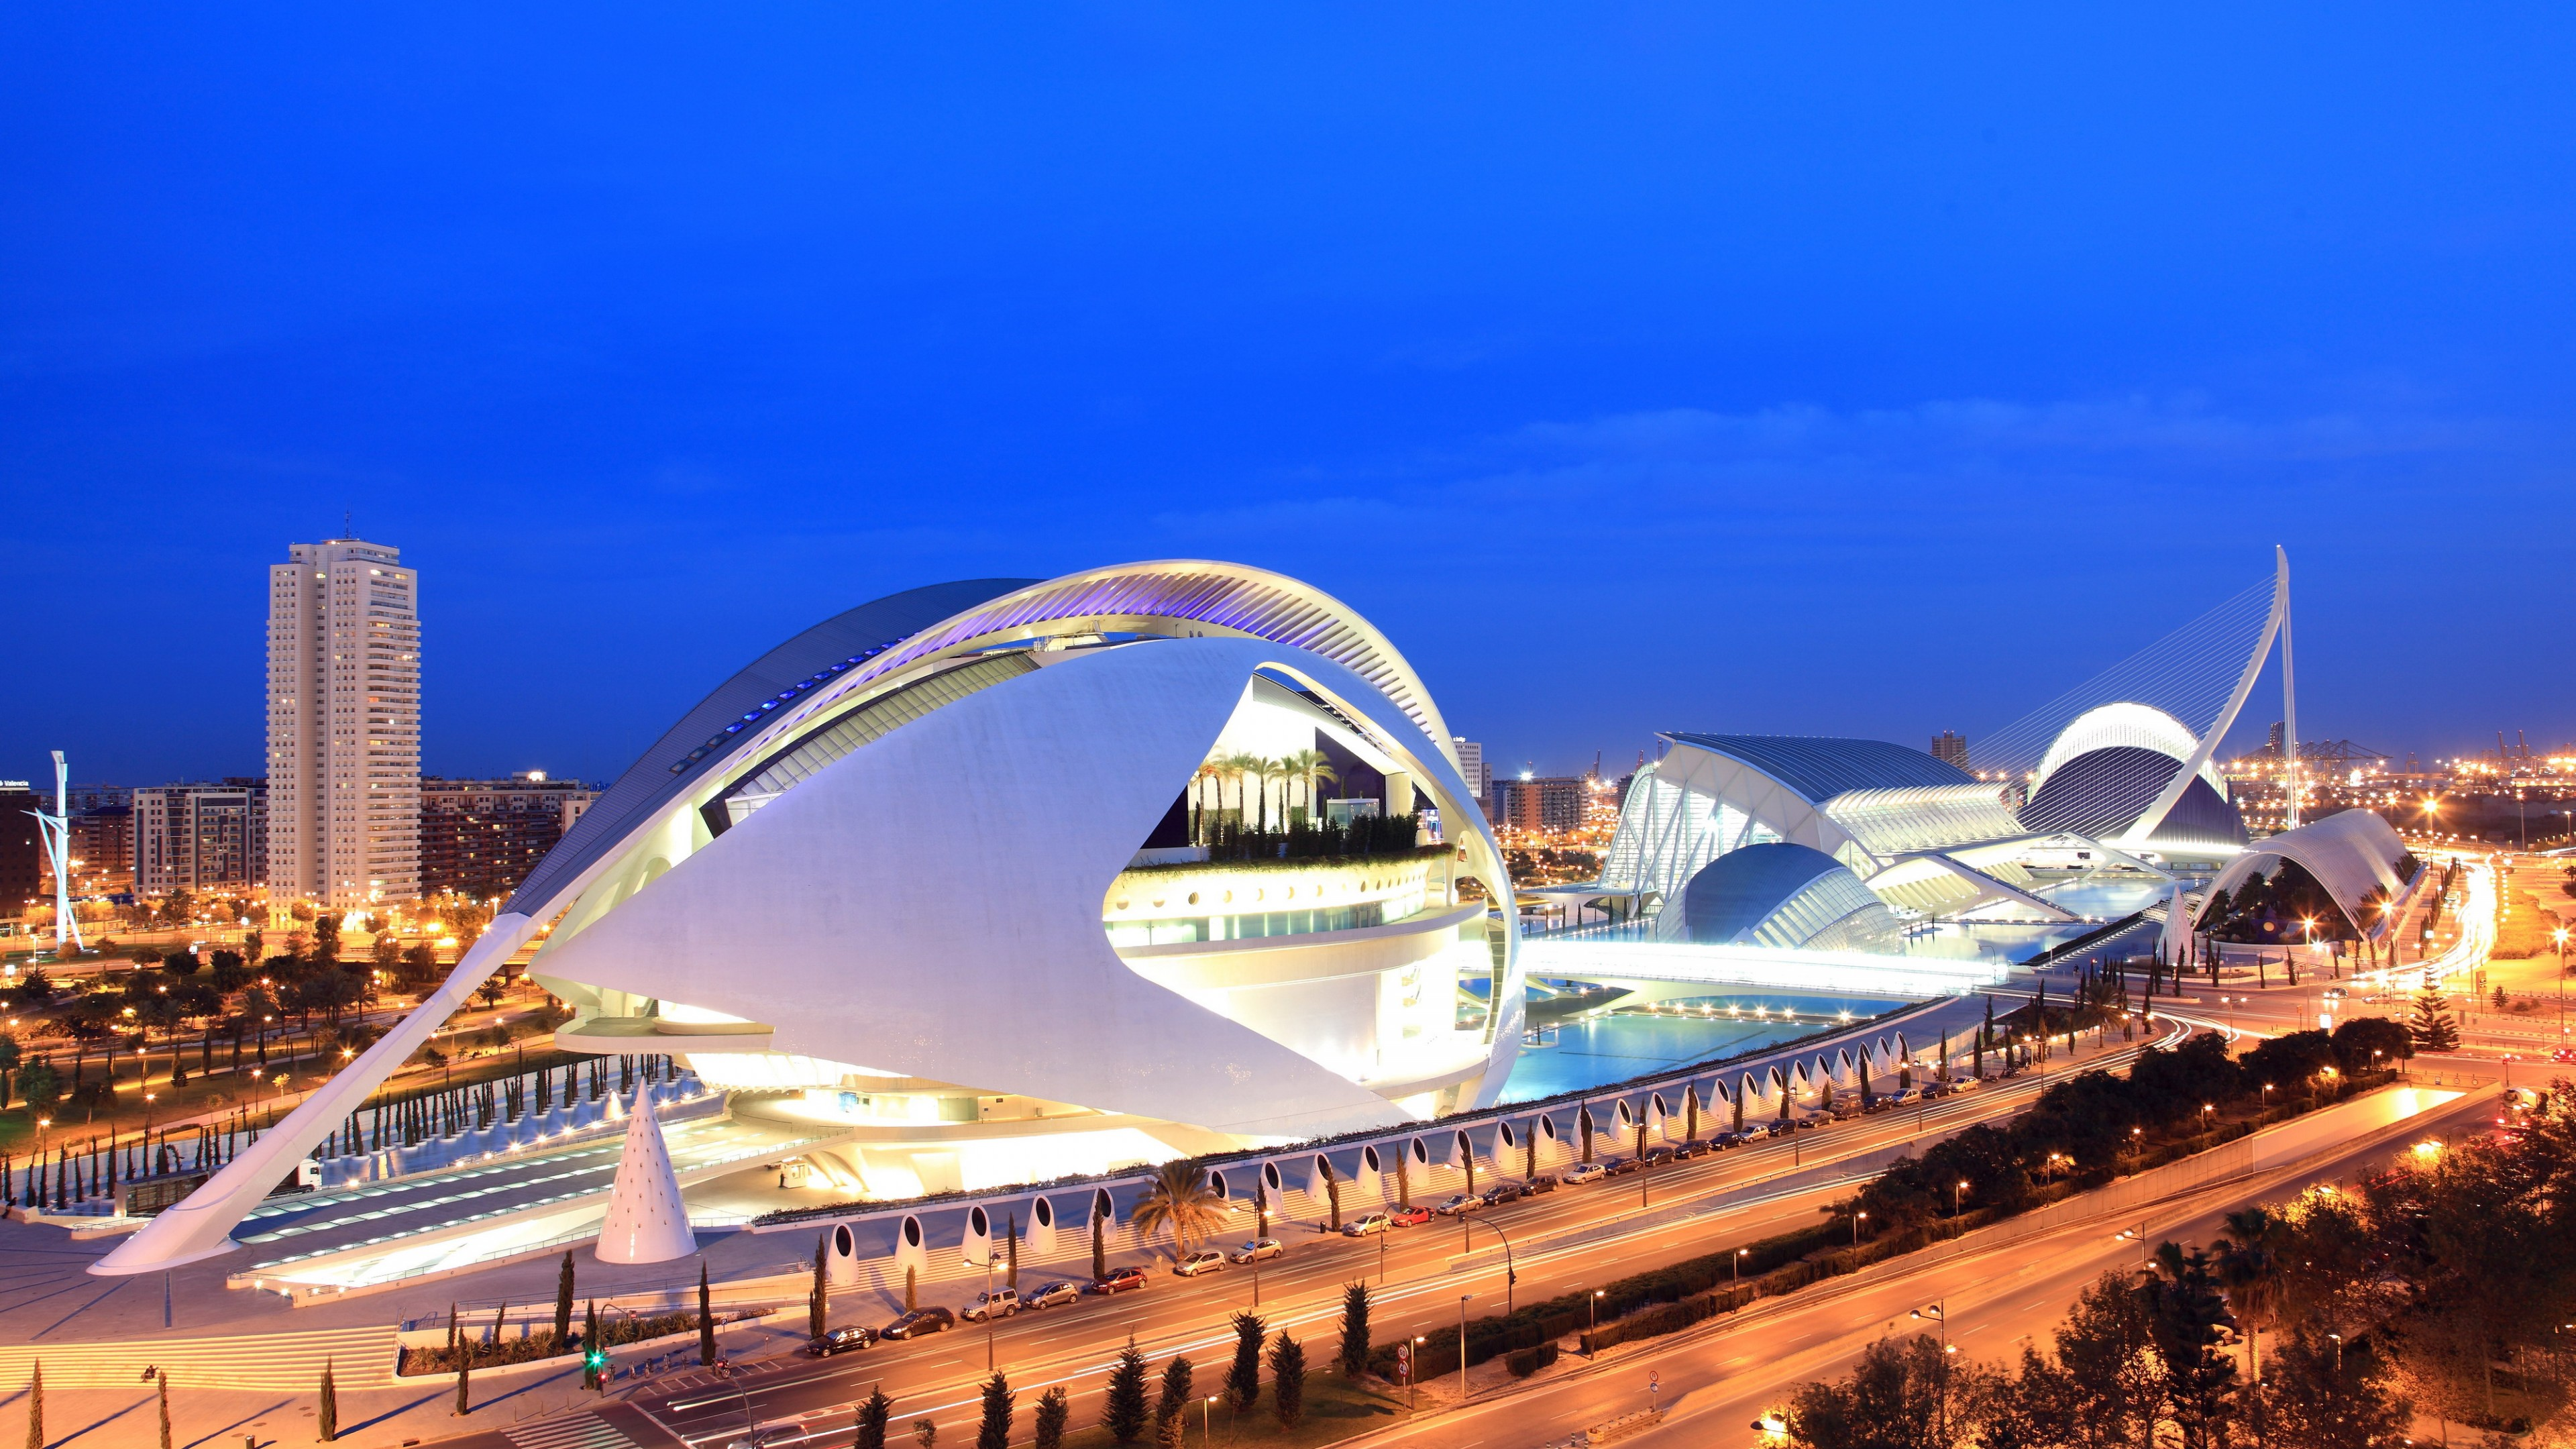 Sport Wallpapers With Quotes: Wallpaper City Of Arts And Sciences, Spain, Tourism